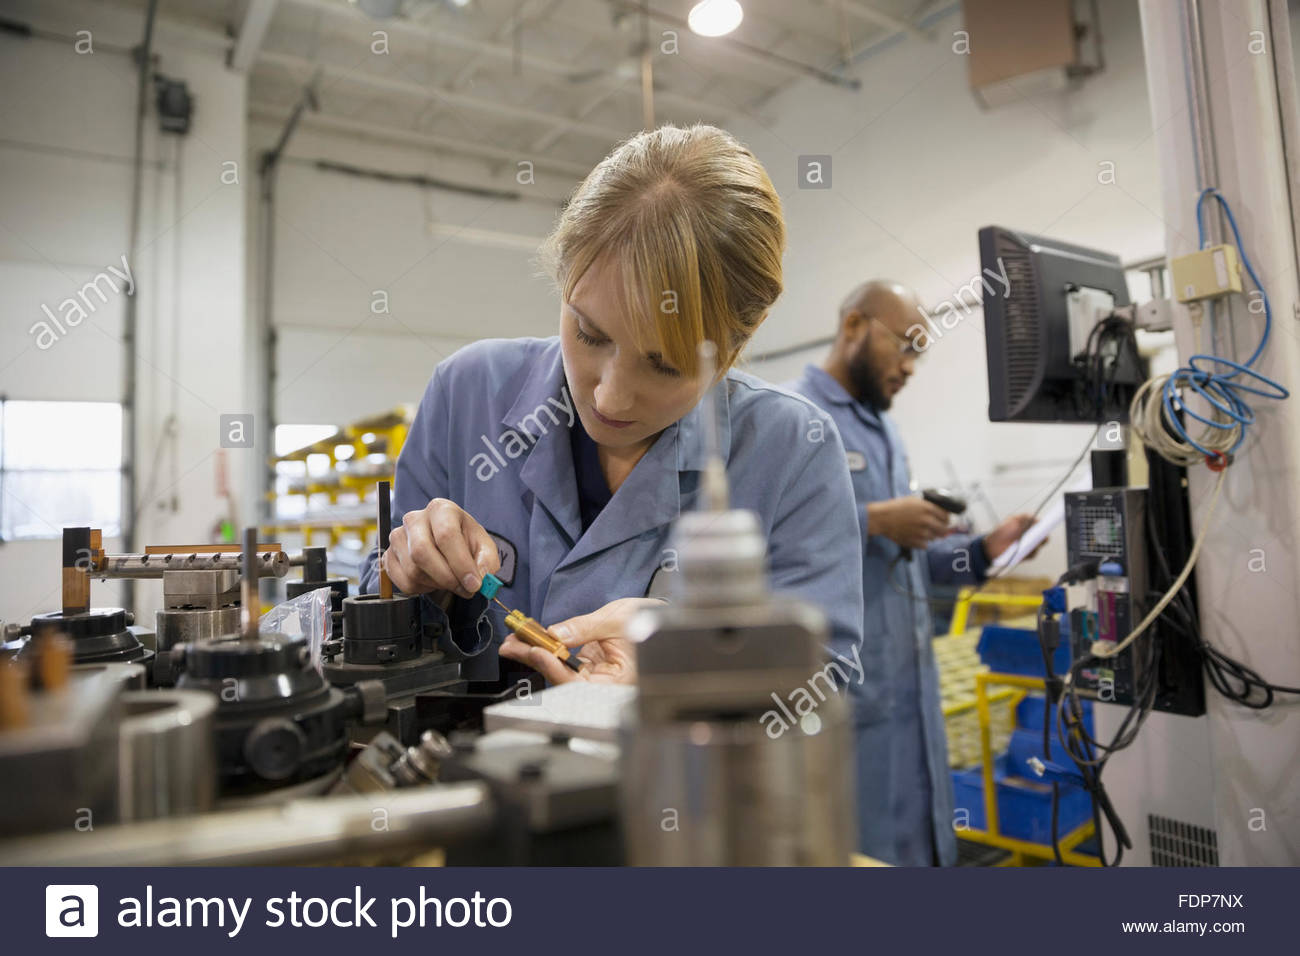 Worker examining part in factory - Stock Image